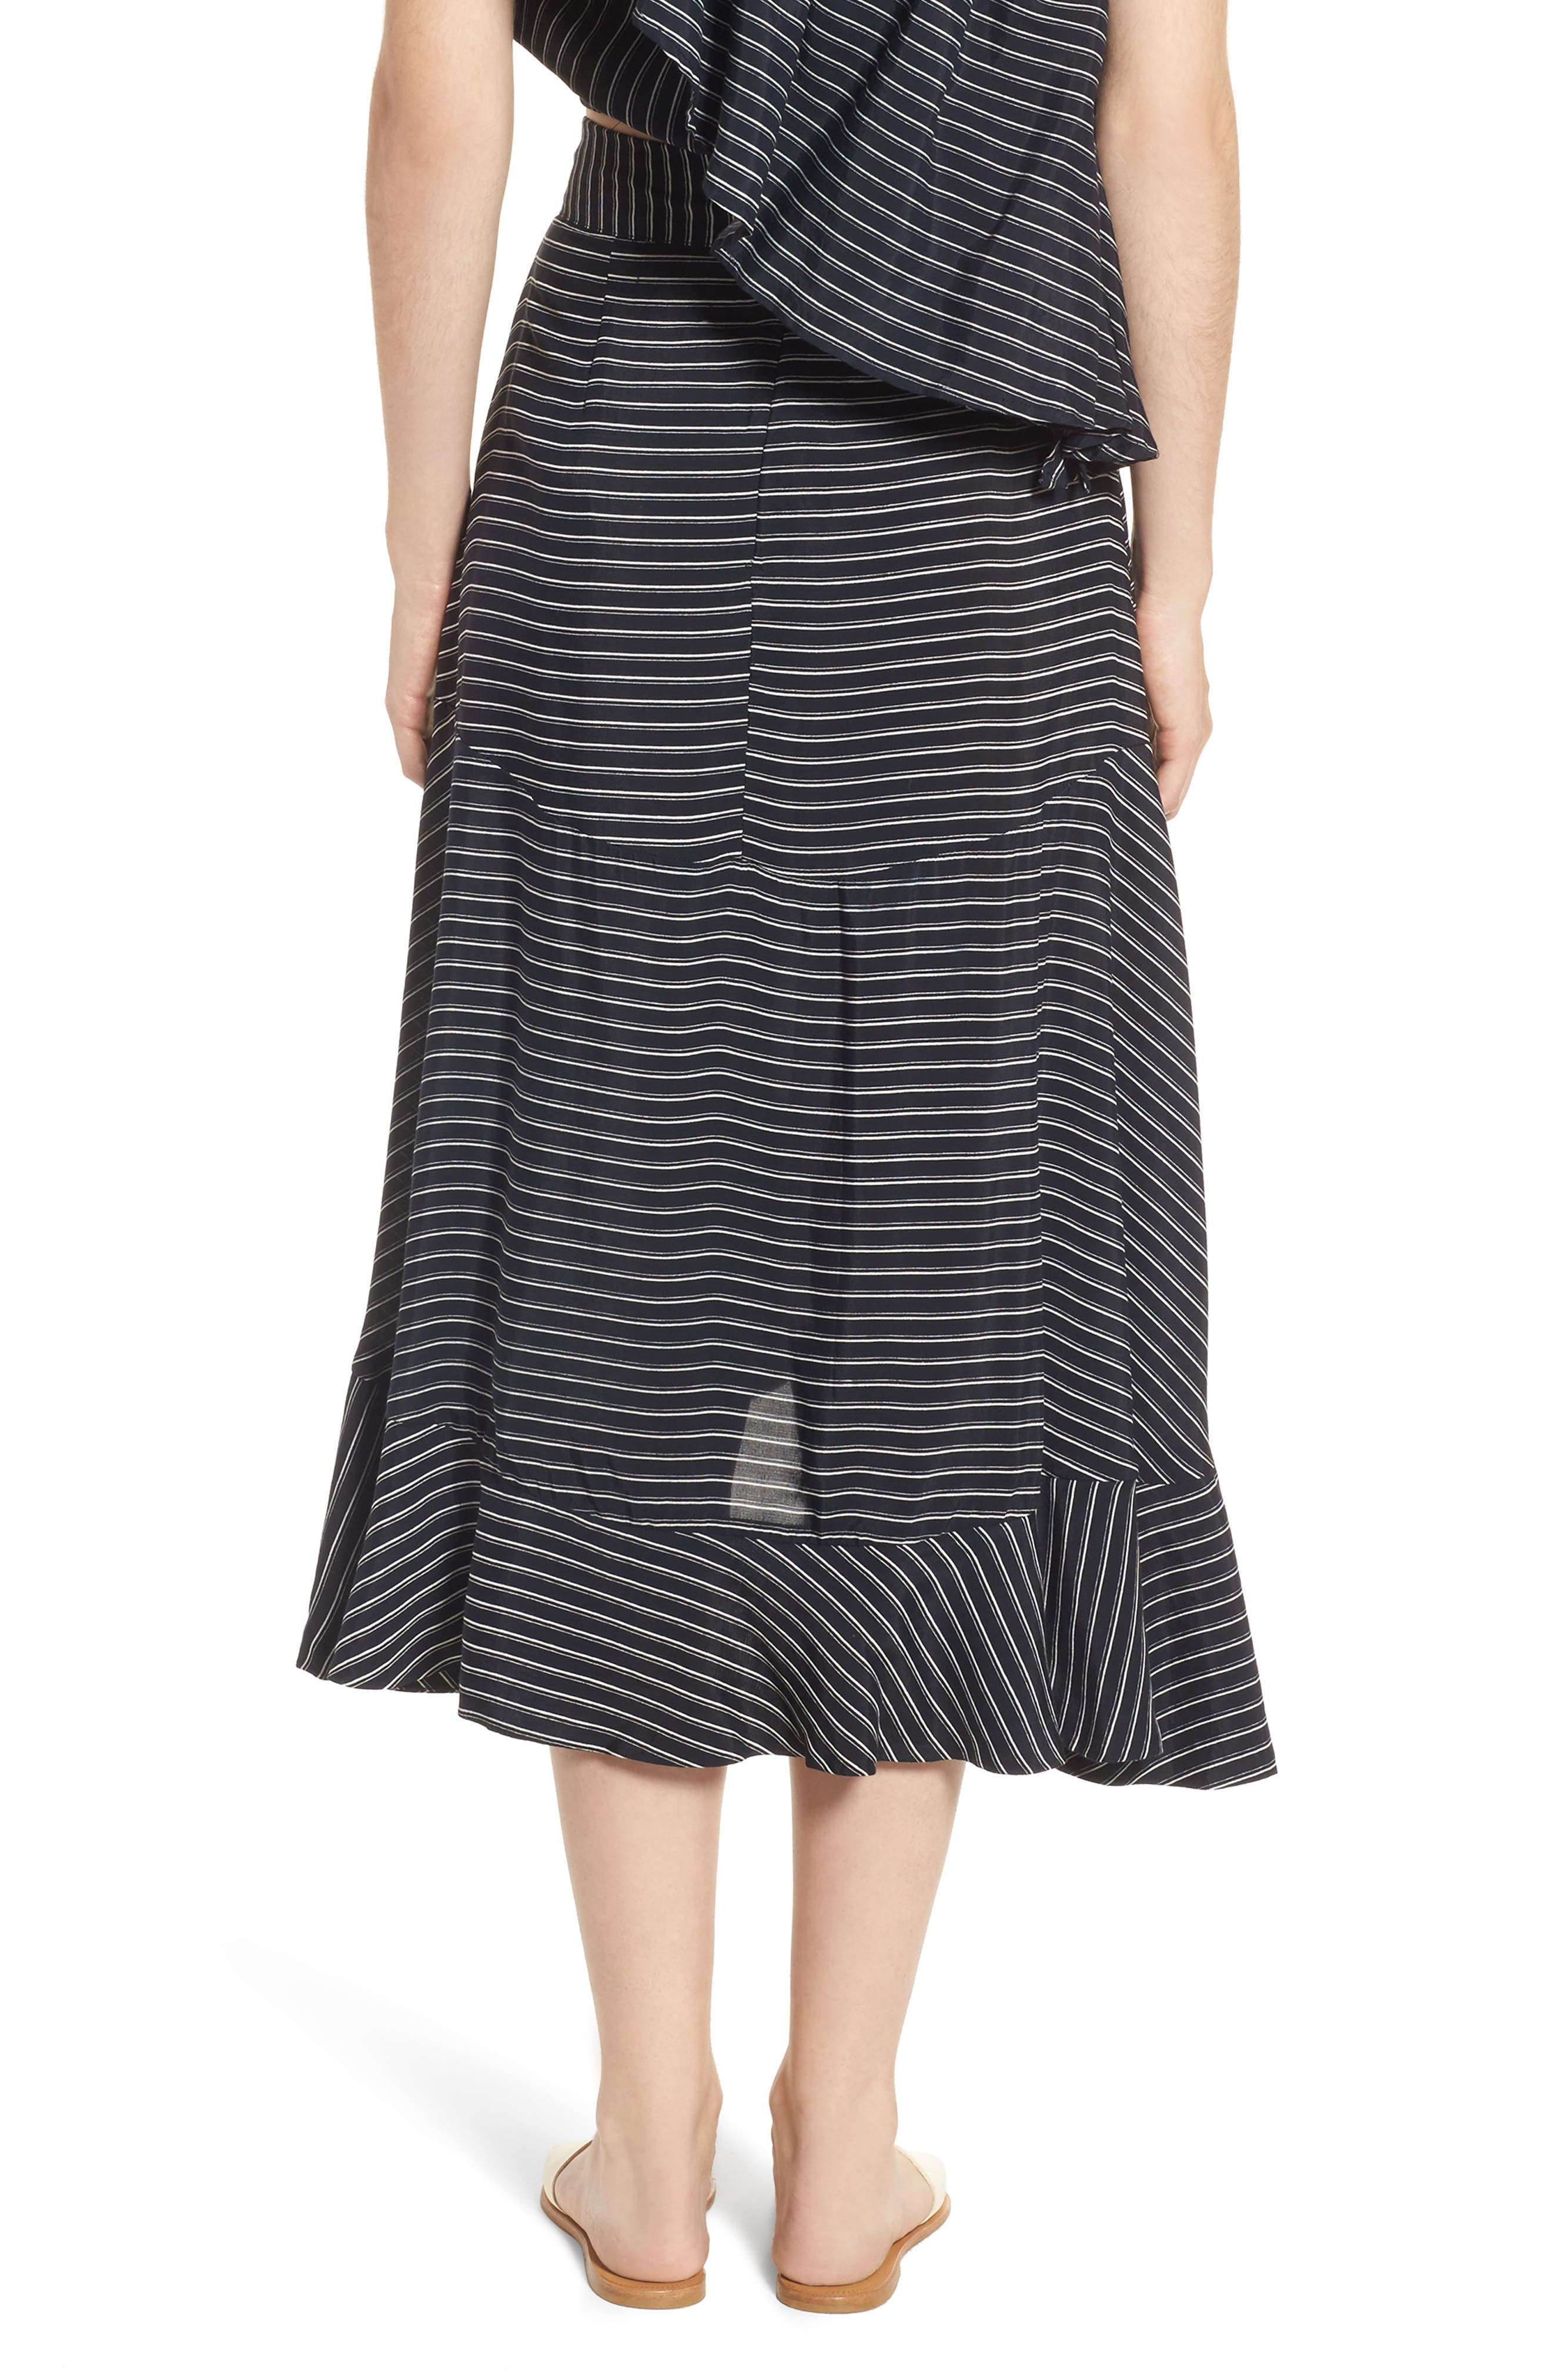 Kamares Ruffle Midi Skirt,                             Alternate thumbnail 2, color,                             San Cristobal Stripe Print